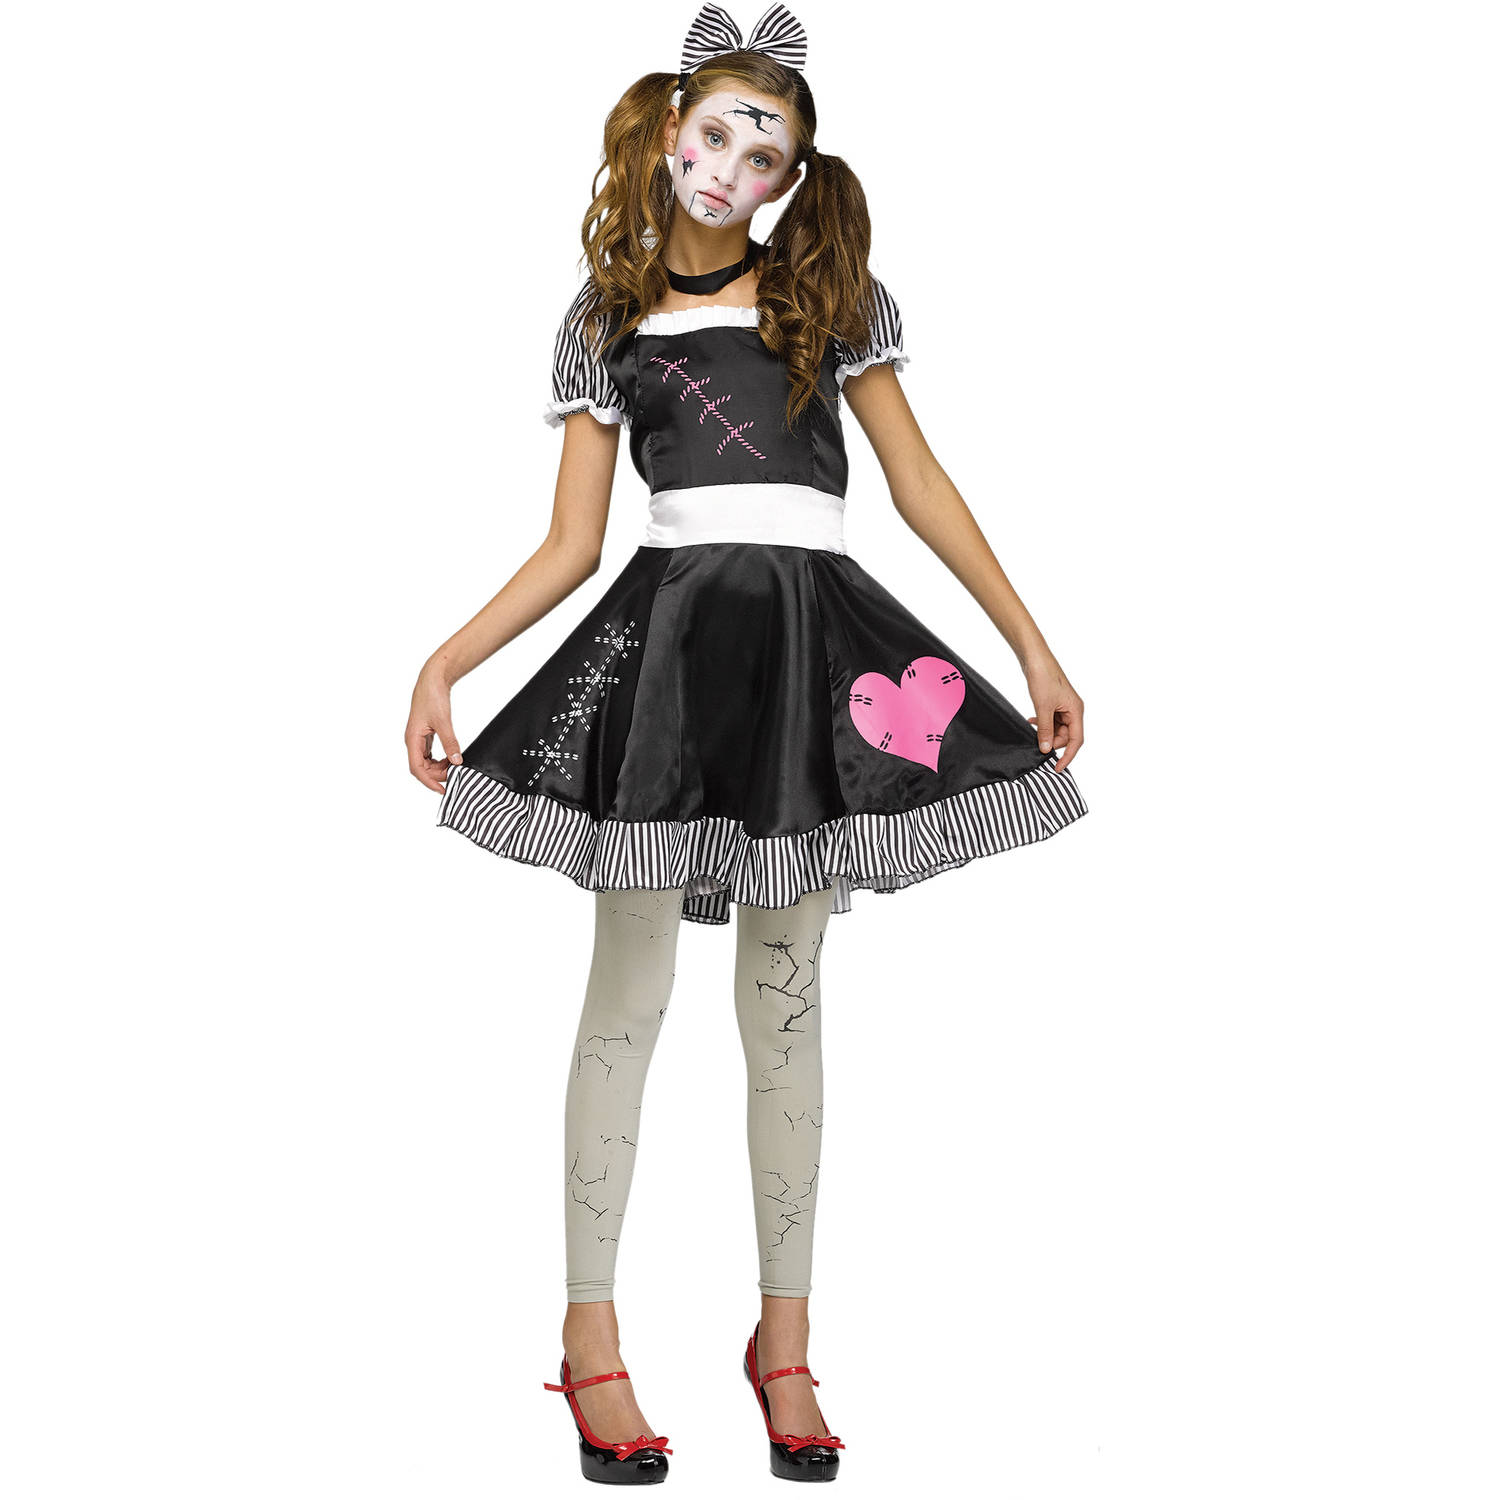 Broken Doll Teen Halloween Costume